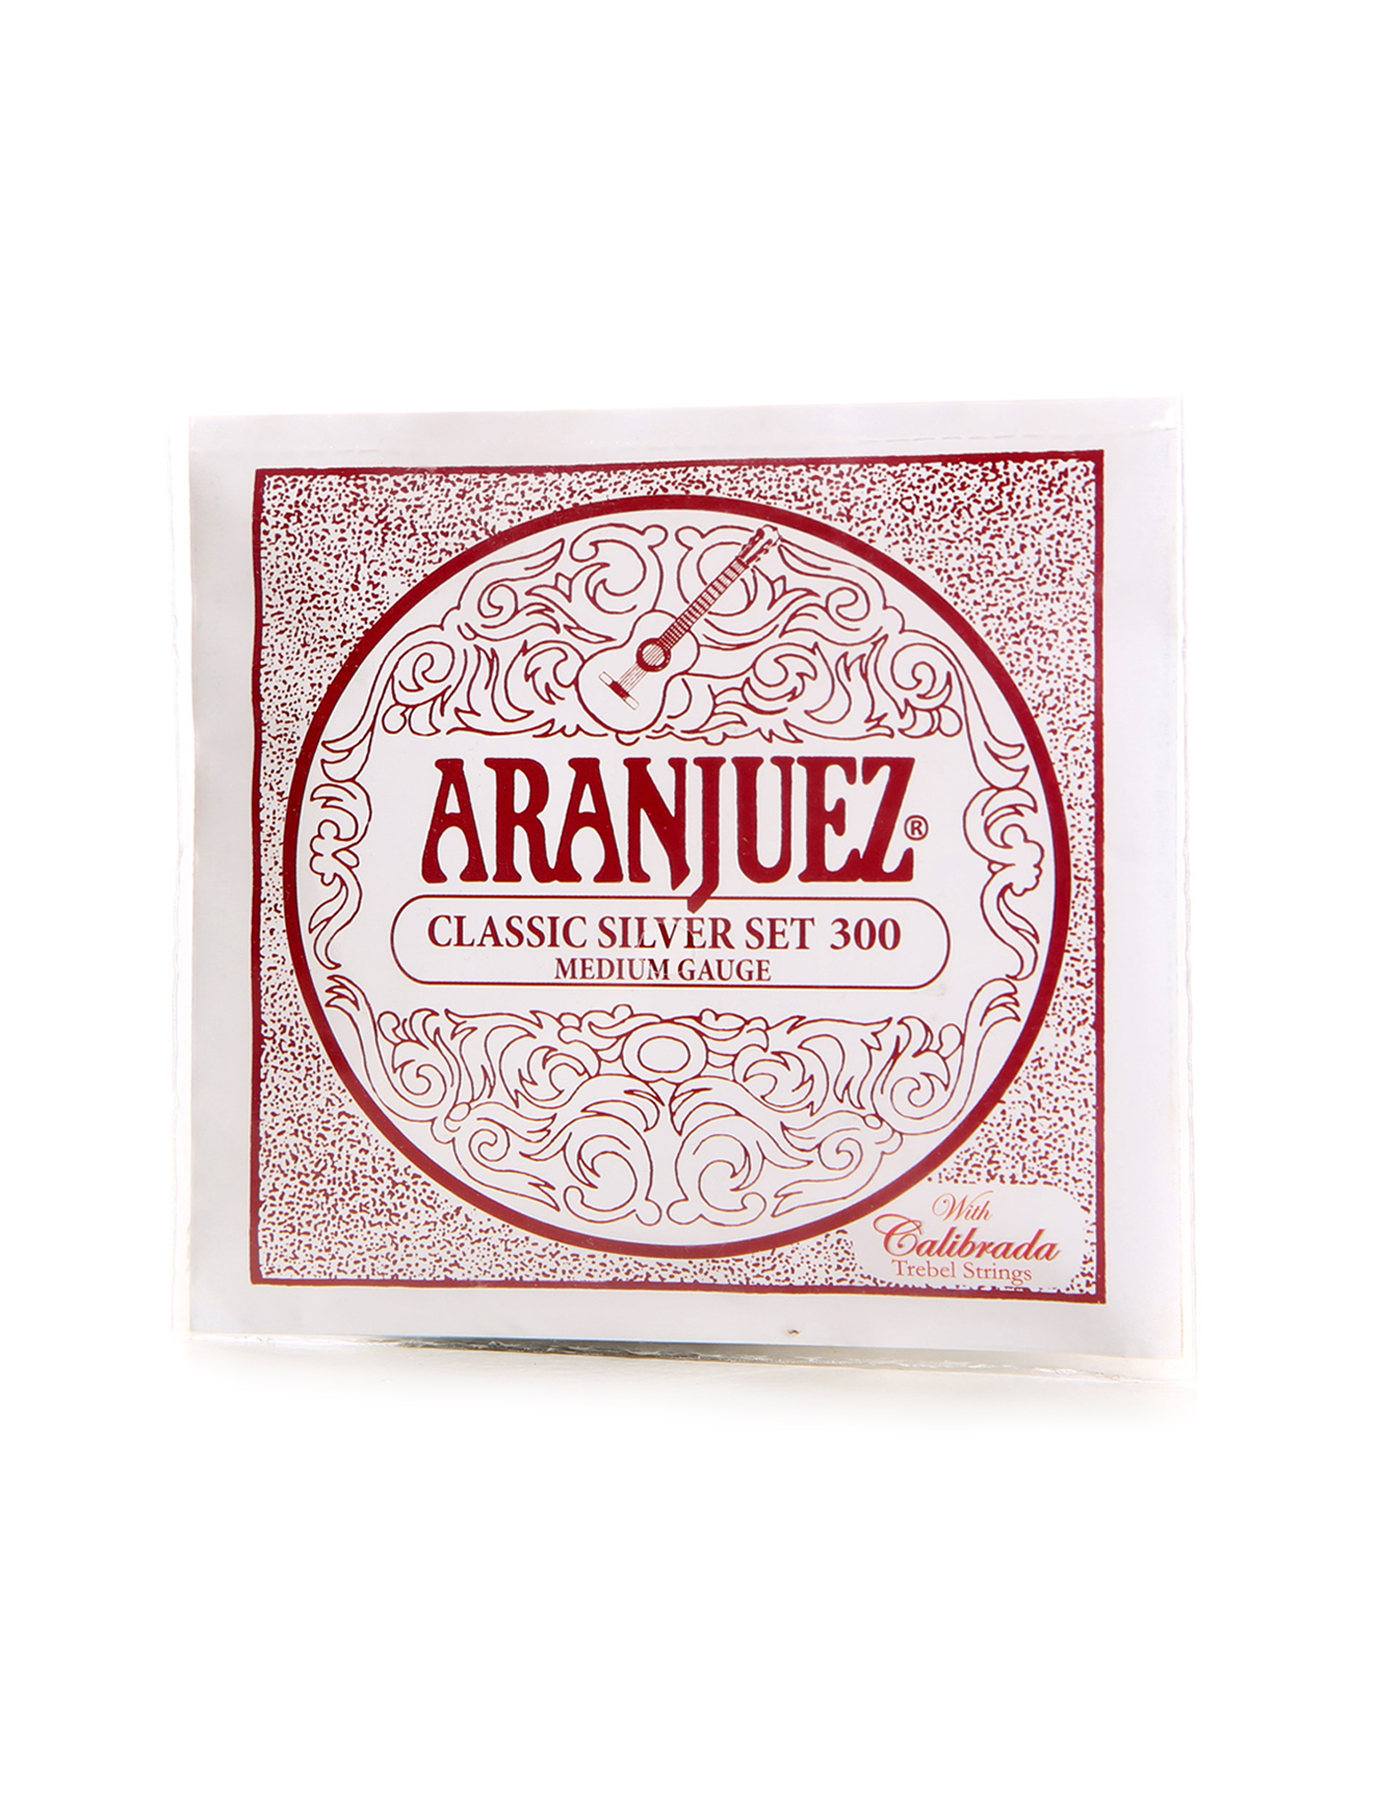 Aranjuez guitar strings medium tension